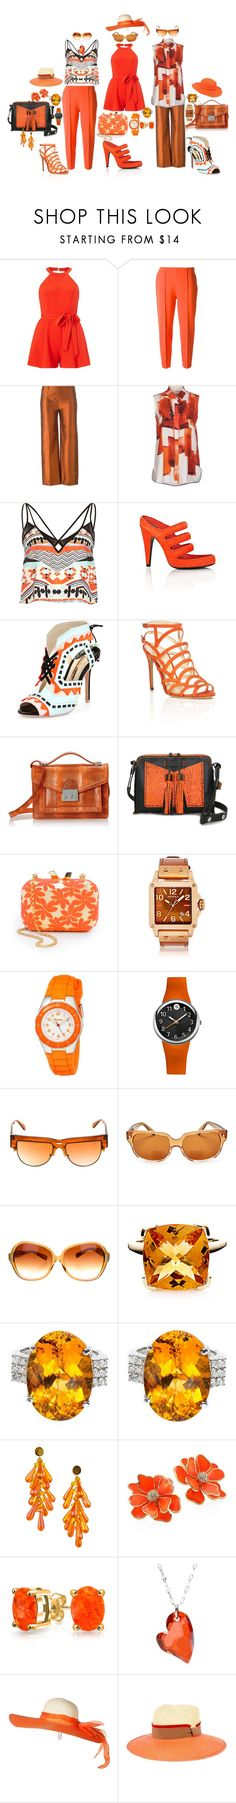 """A celebration of spring"" by blujay1126 ❤ liked on Polyvore featuring Miss Selfridge, Kolor, Romeo Gigli, CÉLINE, River Island, Alexander Wang, Sophia Webster, Alexandre Birman, Loeffler Randall and Carianne Moore"